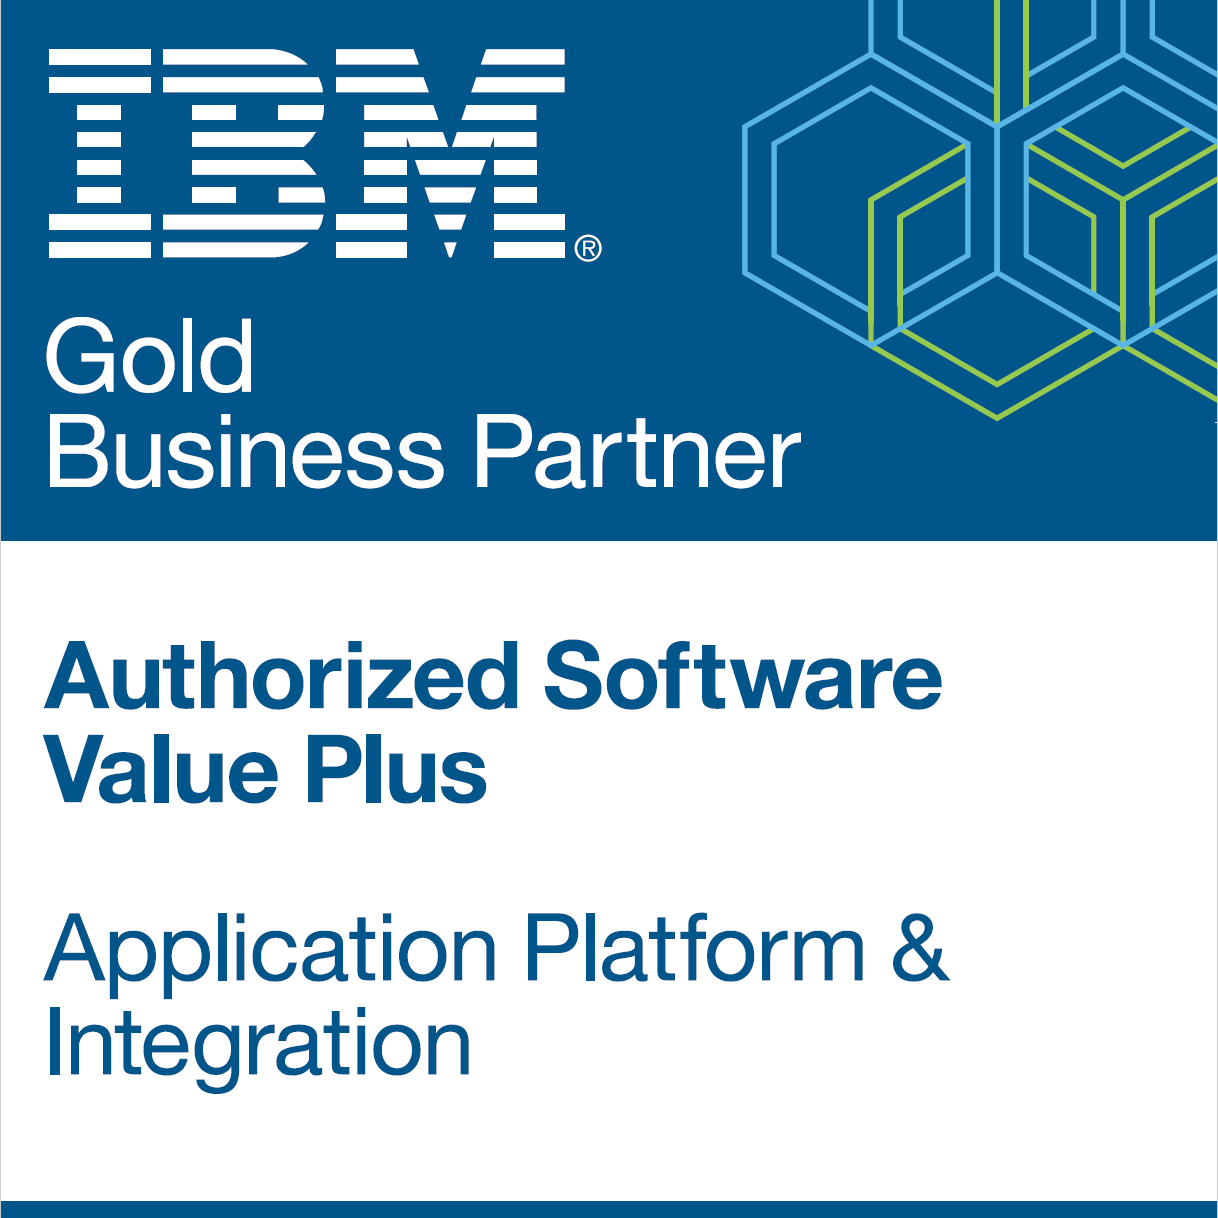 ABS is a IBM Gold Business Partner and software reseller...